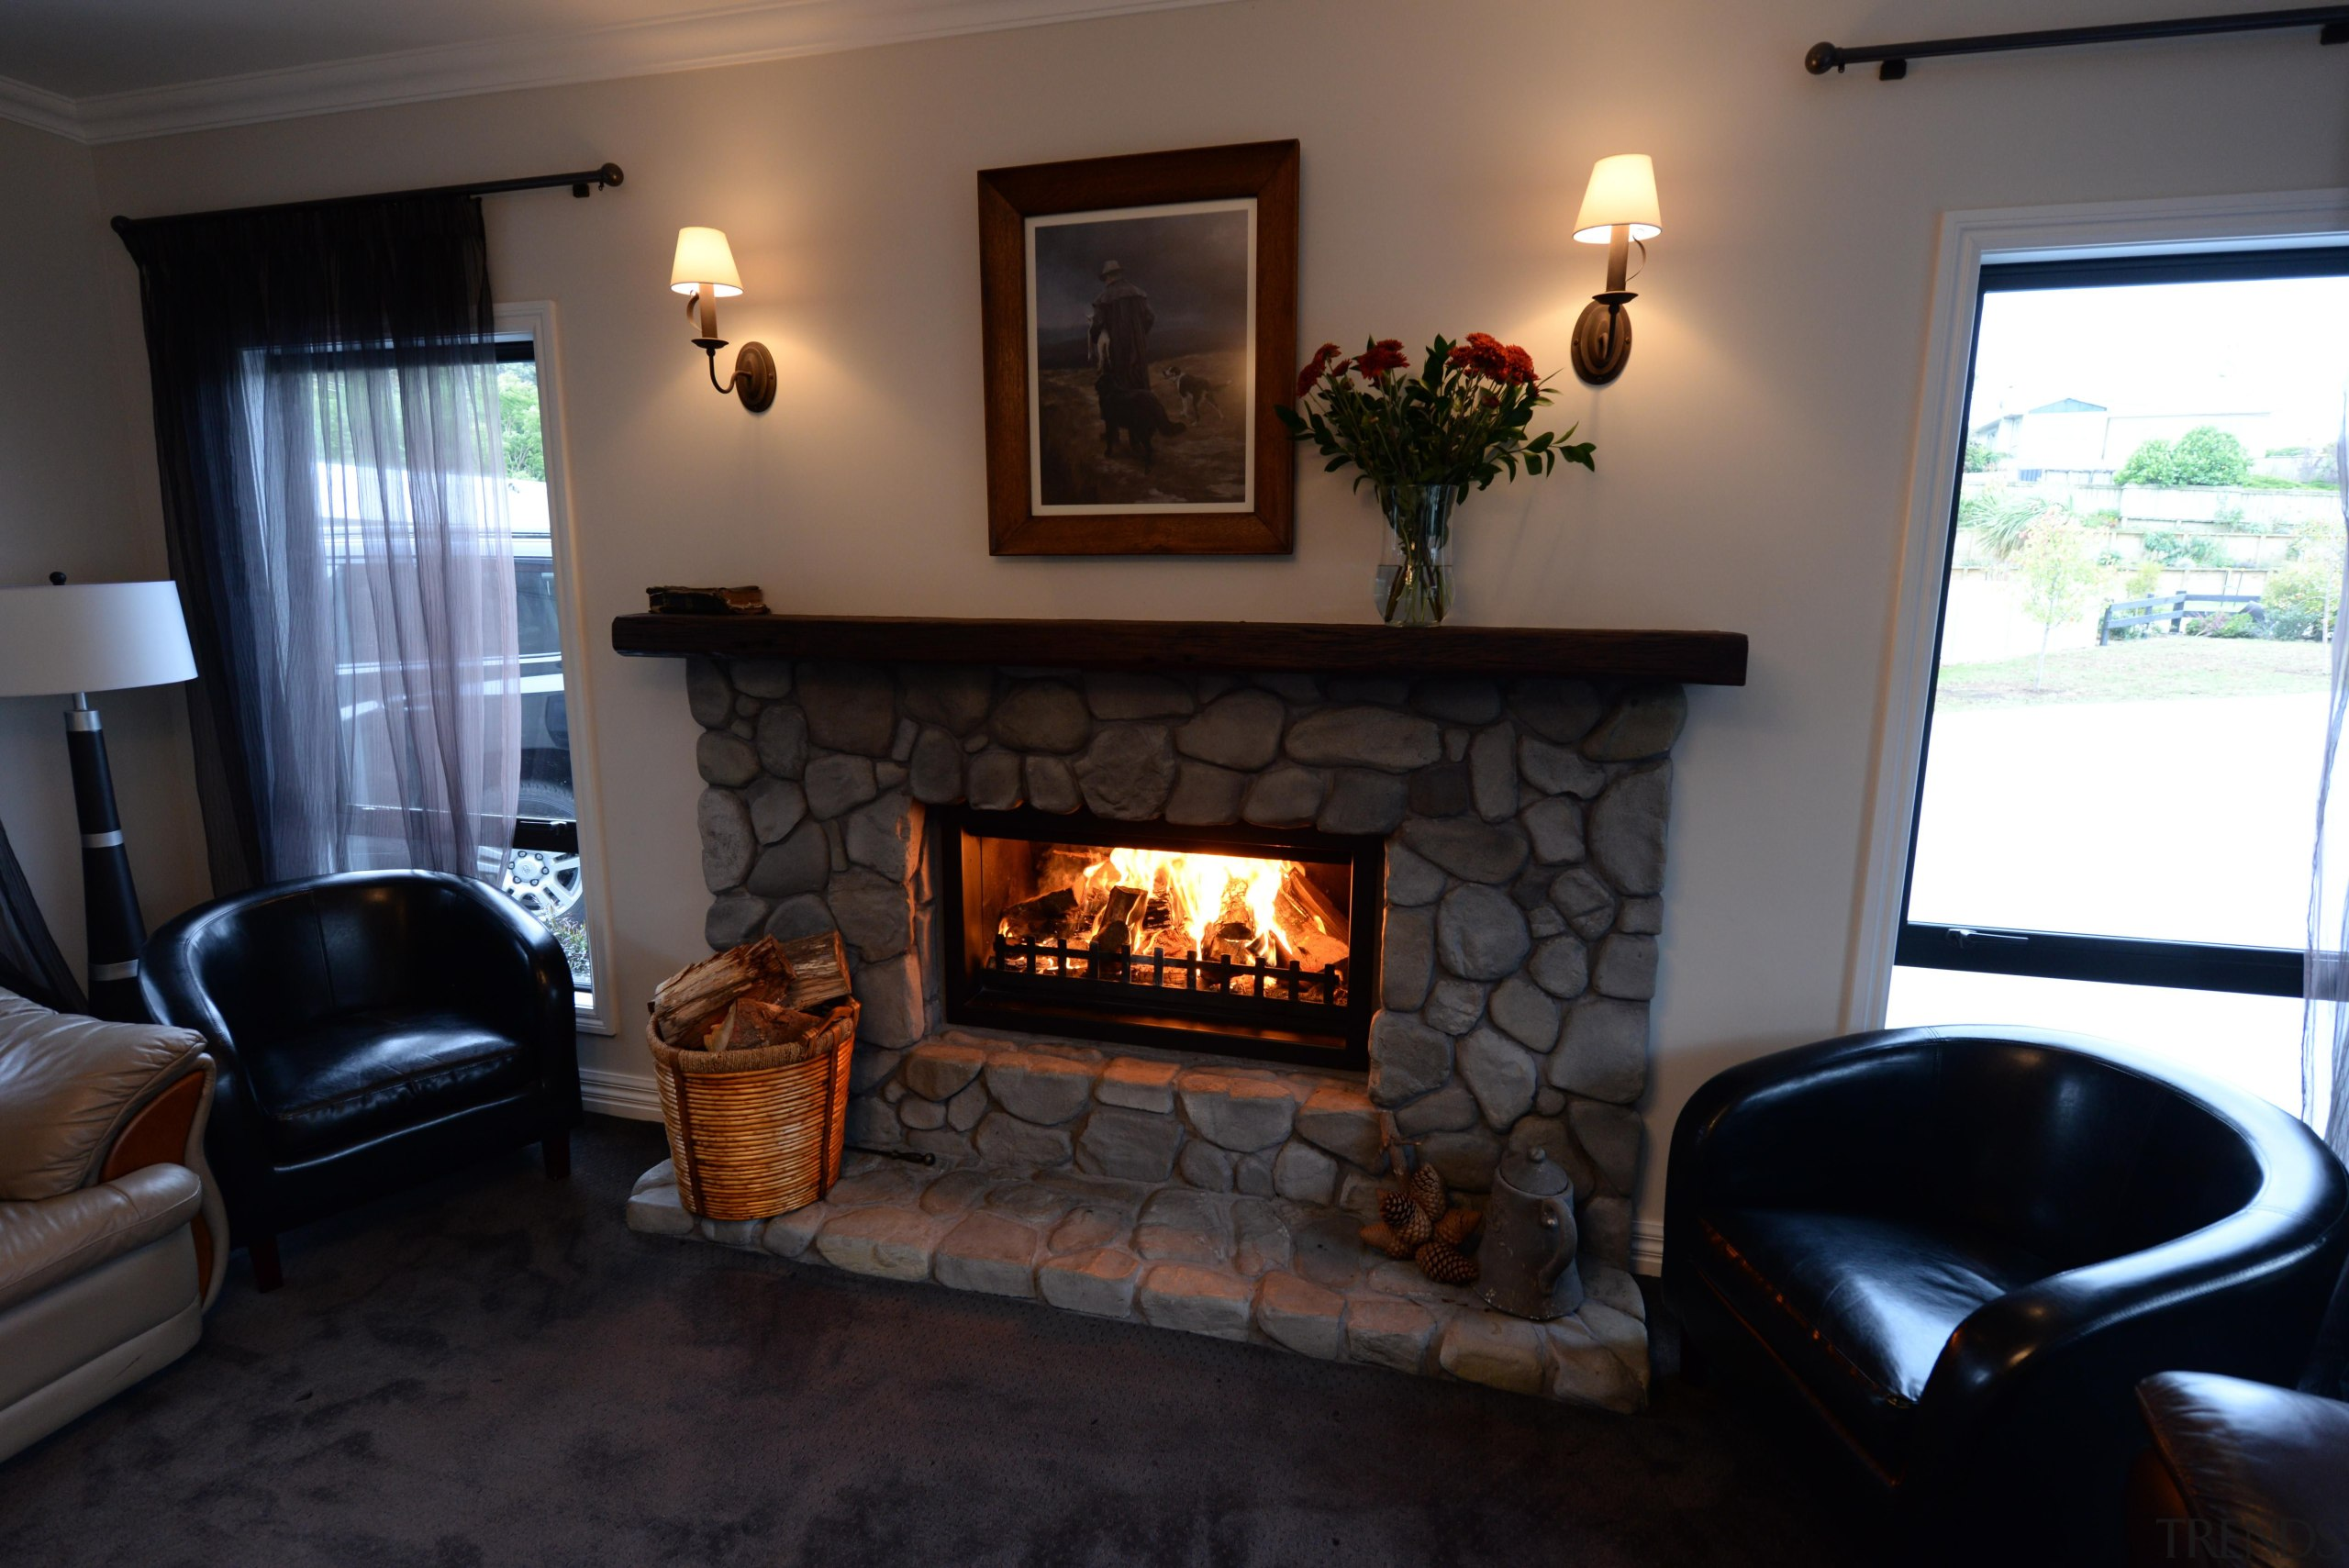 Feature river stone open fire surroundSince the early fireplace, hearth, home, house, interior design, living room, real estate, room, wood burning stove, black